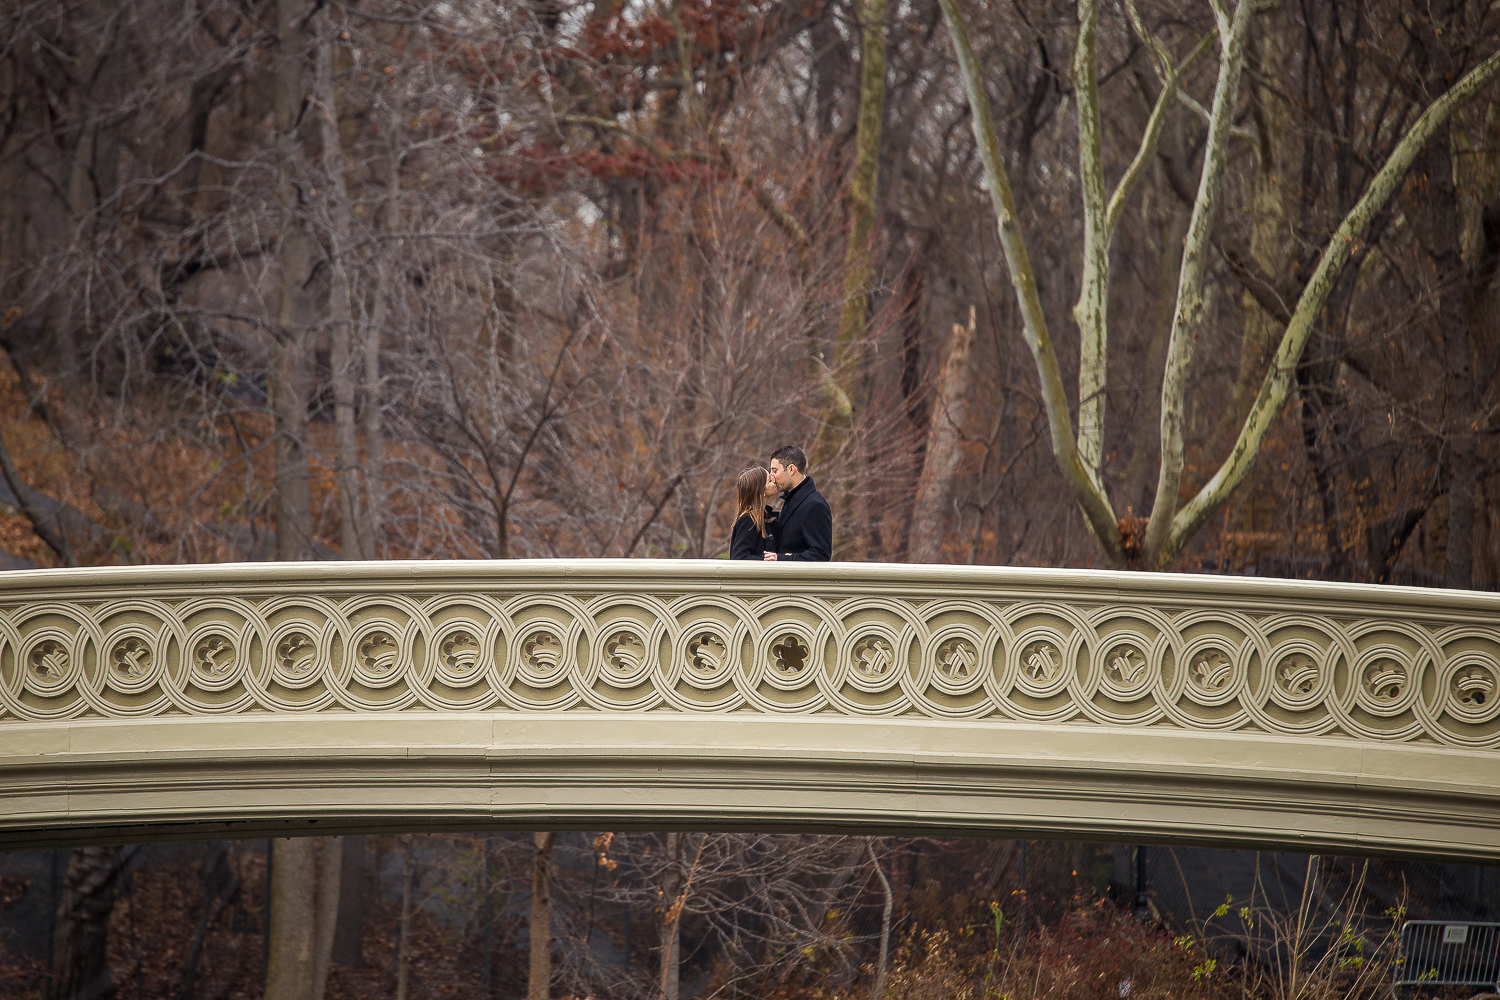 Engagement-photography-central-park-2016-2.jpg